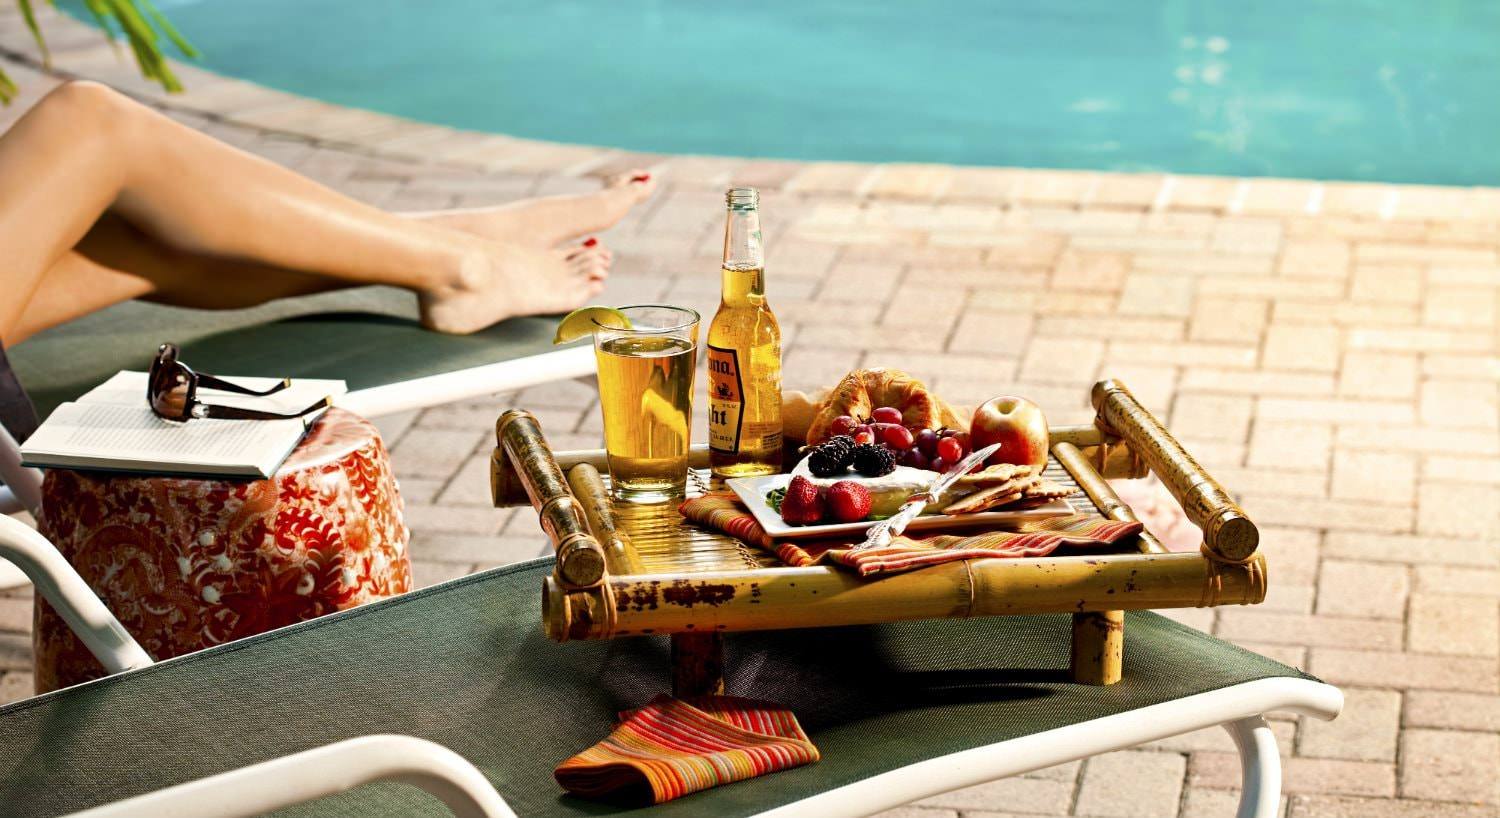 Woman on green lounge chair by pool with book and sunglasses. Tray with beer and fruit variety